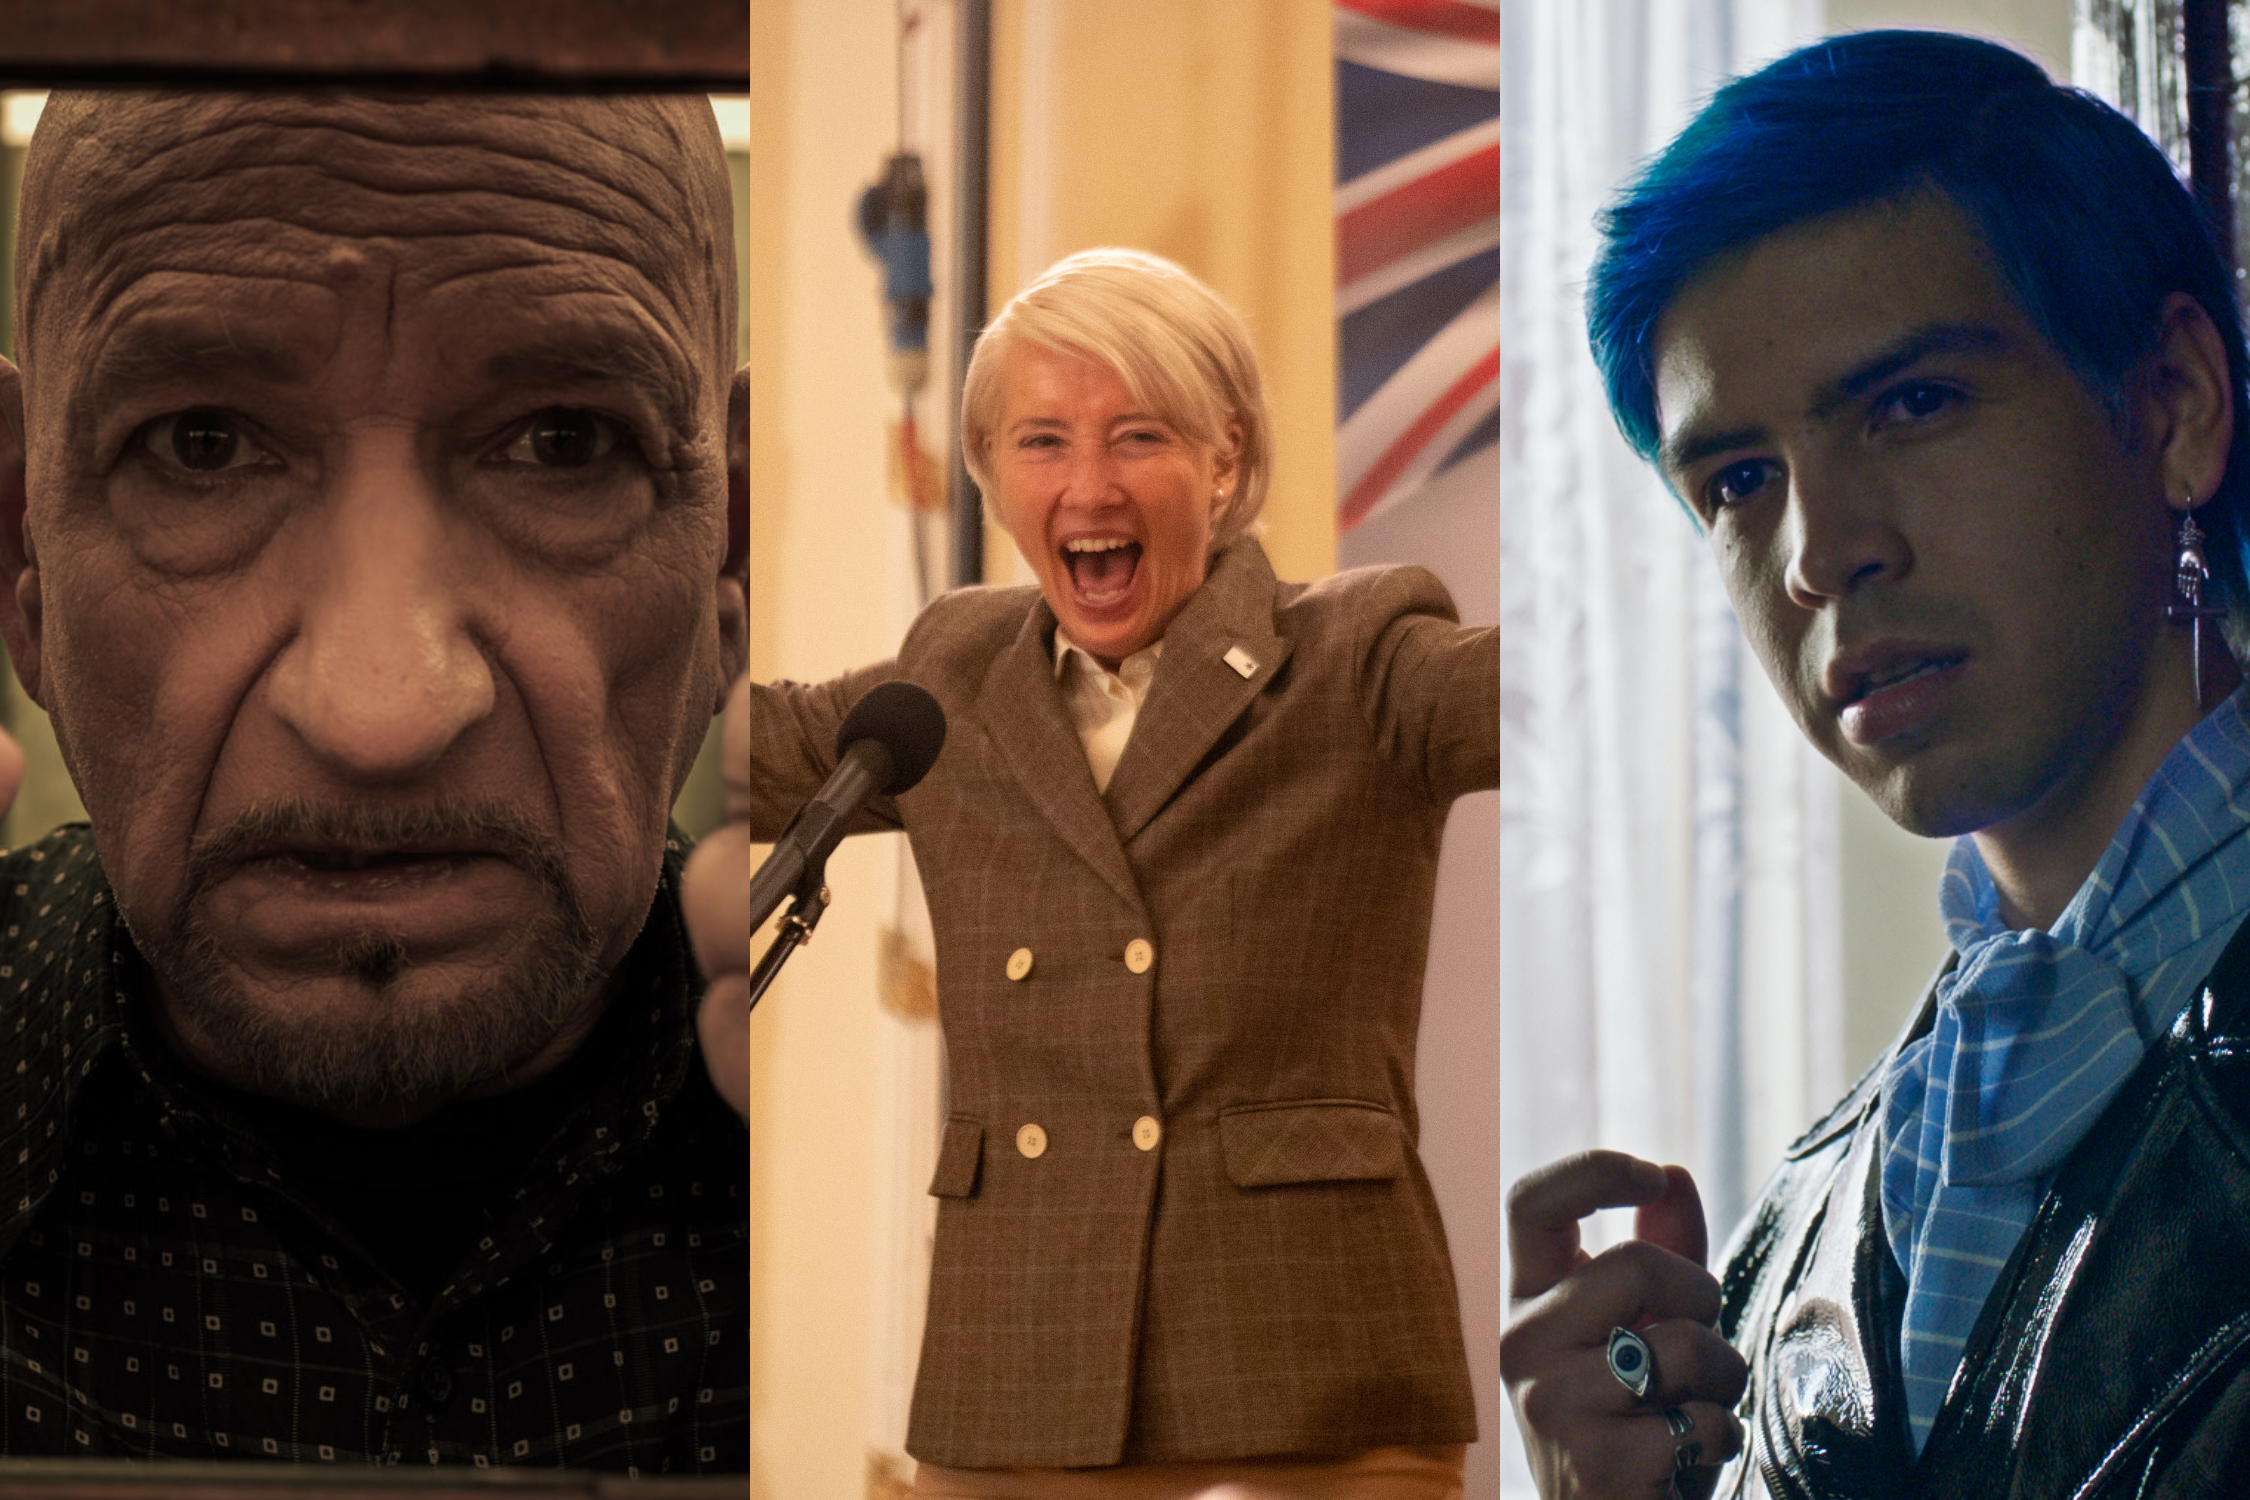 The 5 best TV shows of June 2019